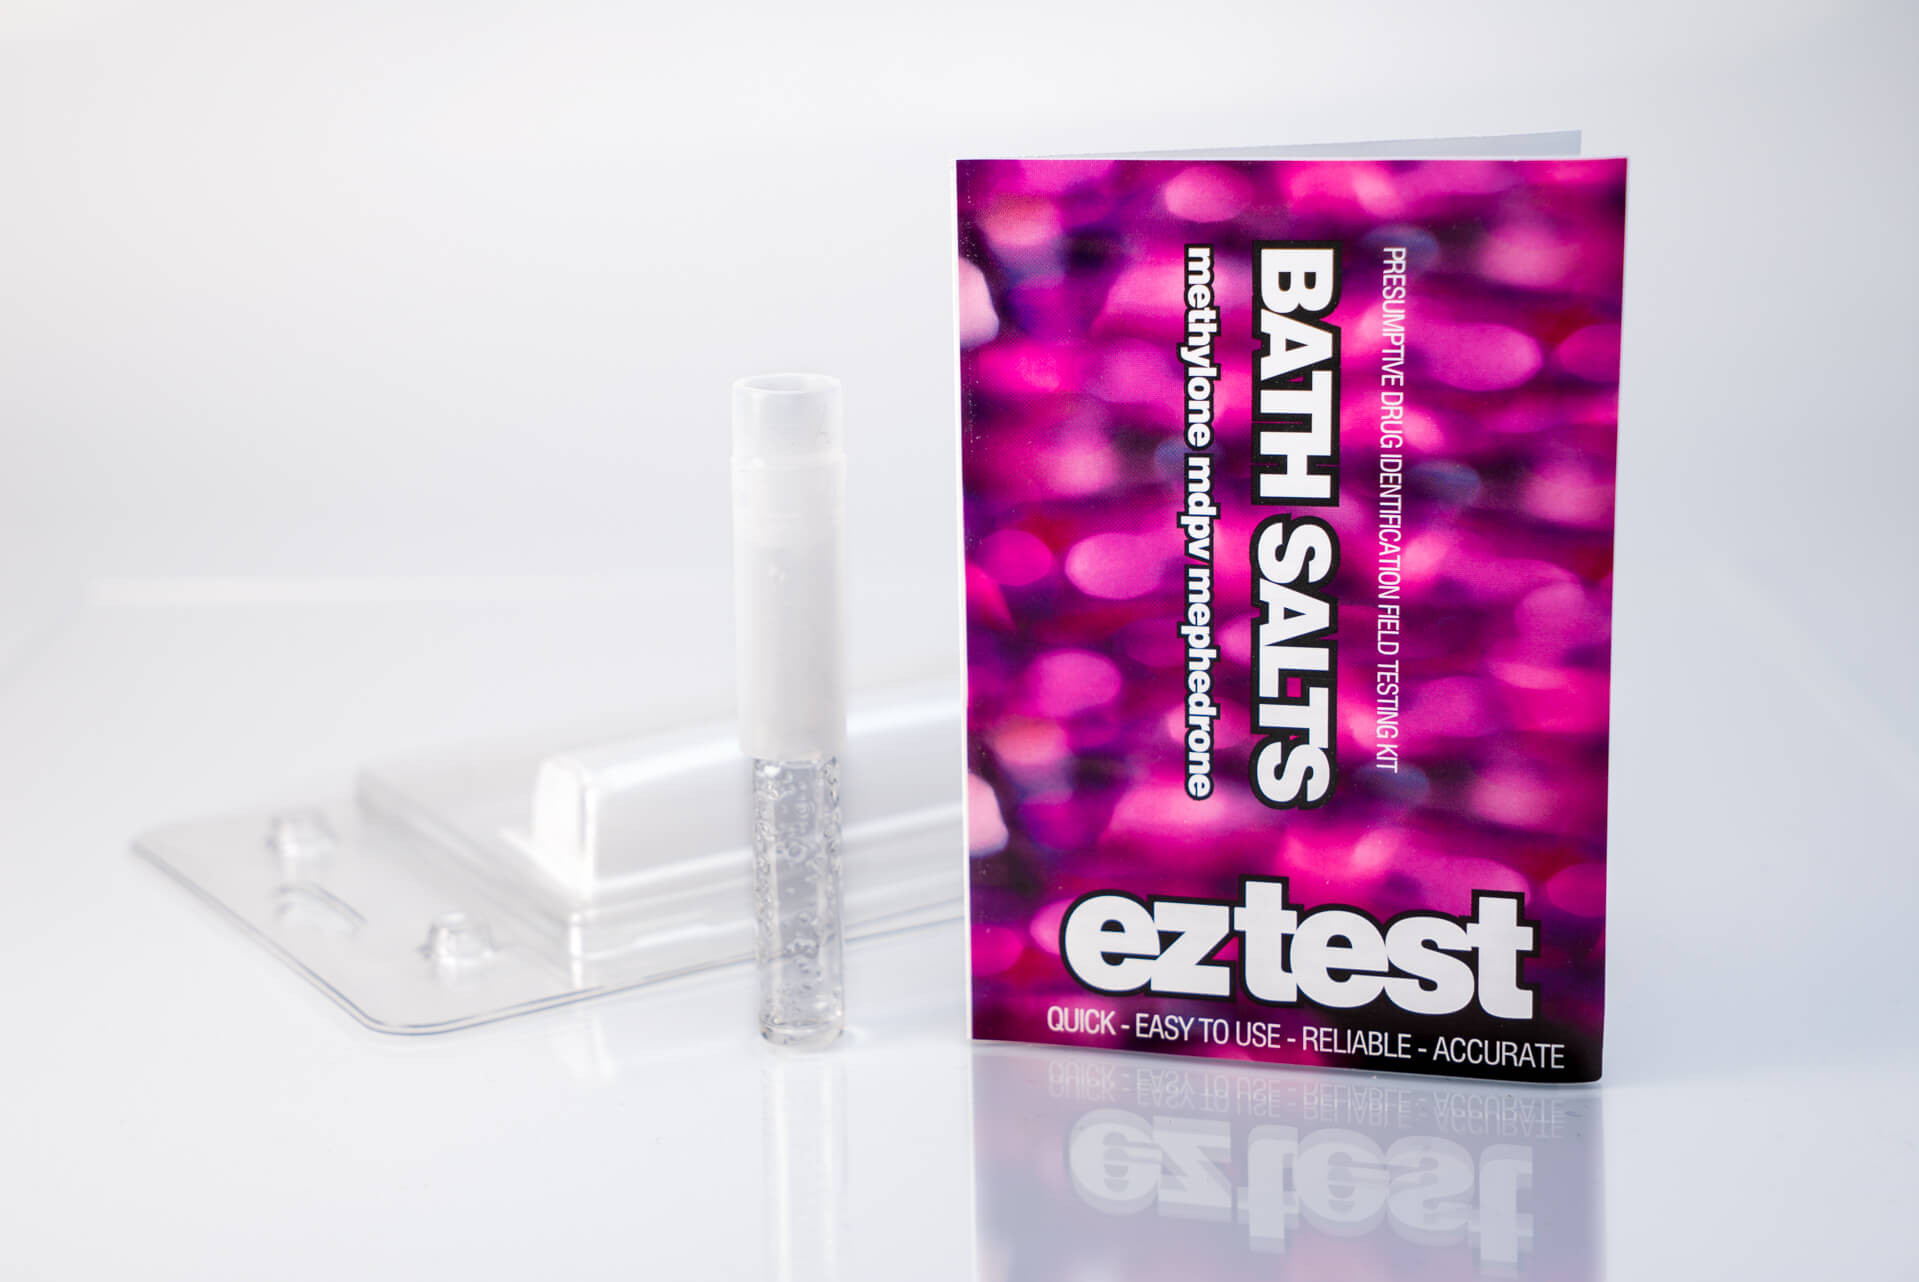 Kit Test Droga Eroina Monouso - Home Drug Testing Kits - EZTestKits.com